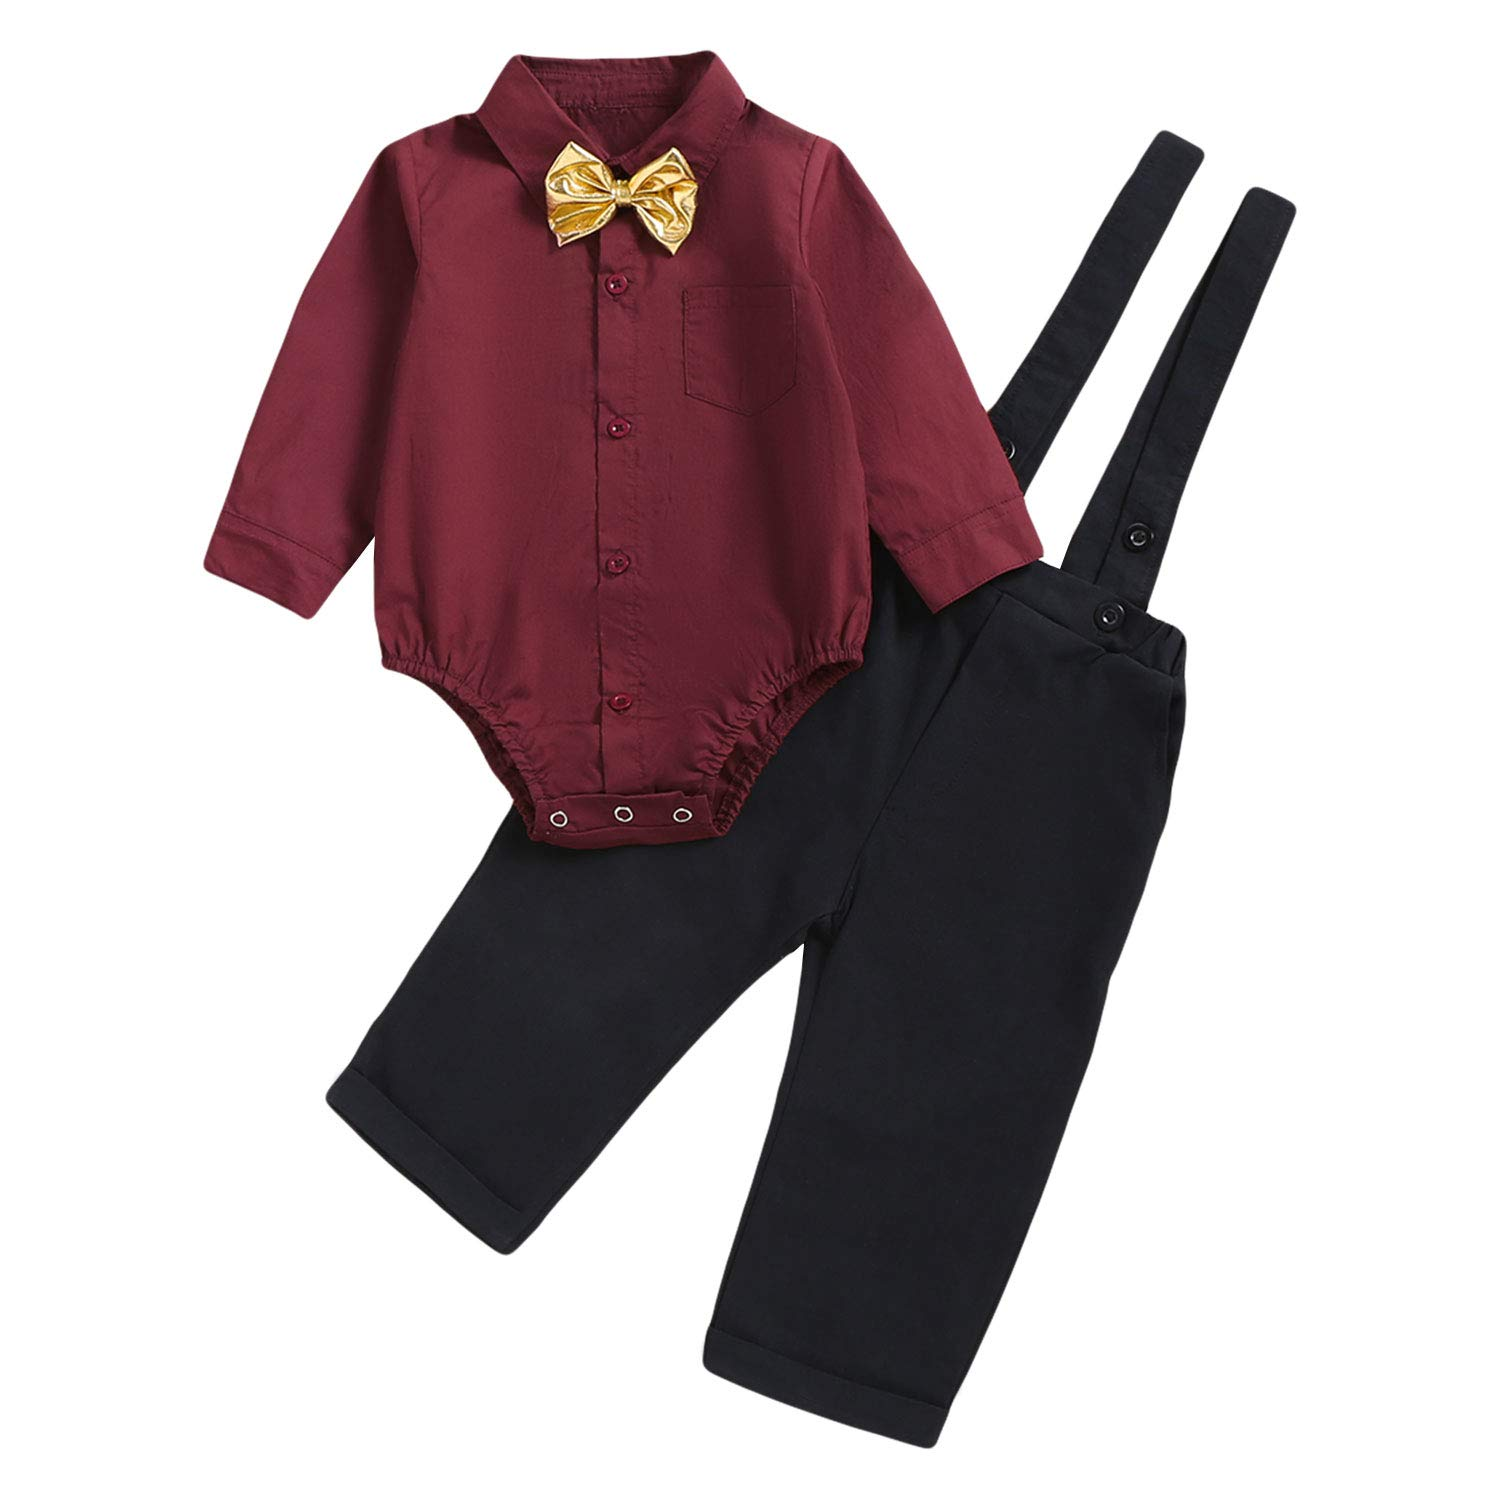 Baby Boys Gentleman Outfit Set, Infant Plain Shirt+Bowtie +Suspenders Pants for Toddler Casual Formal Wedding Birthday Party (Red Long Sleeve Plain Black Pants, 18-24 Months) by ROMPERINBOX